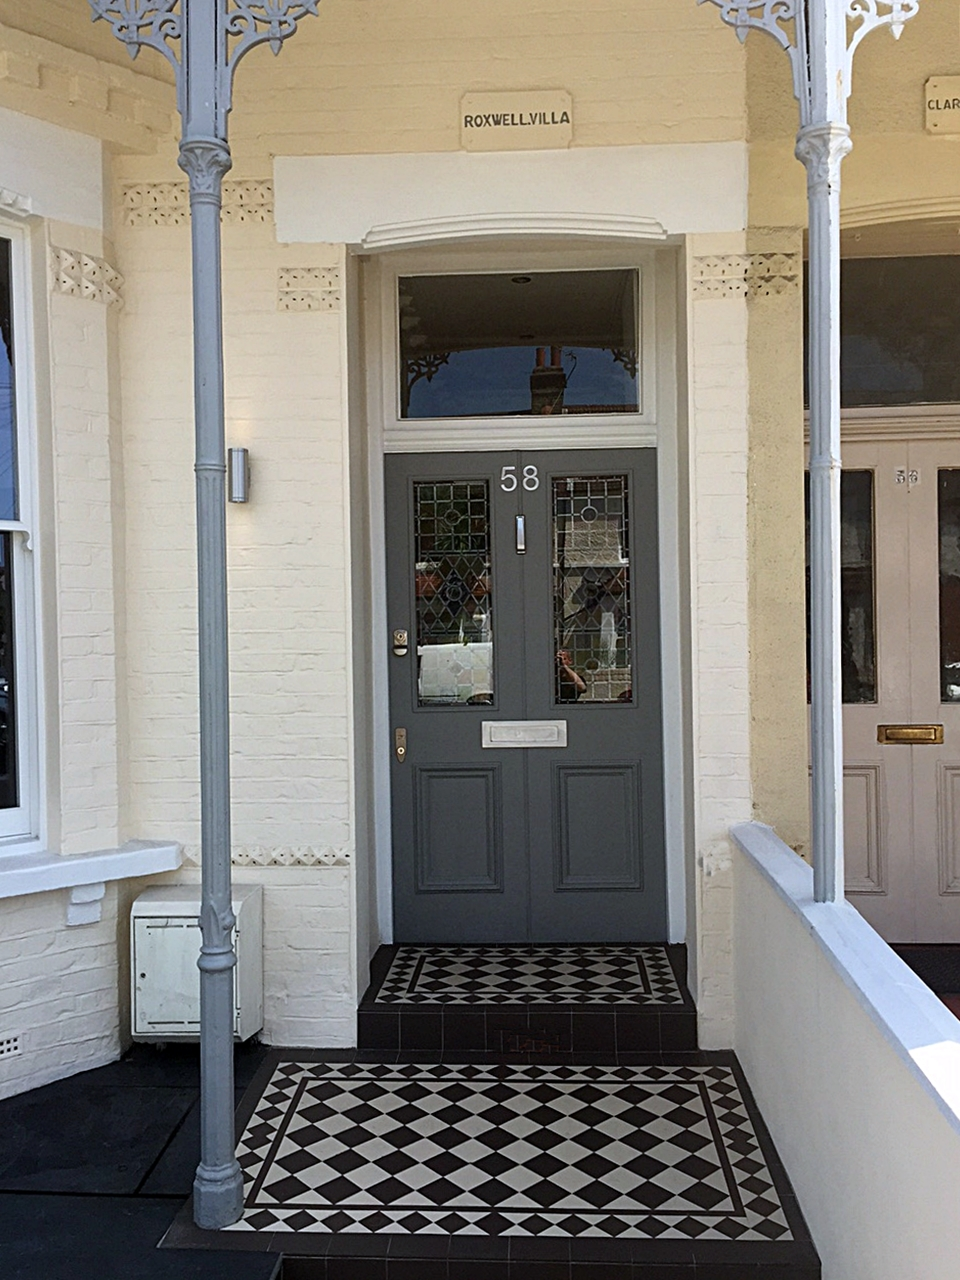 victorian steps and porch tiles grey and white  front garden company wandsworth fulham chelsea wimbledon london